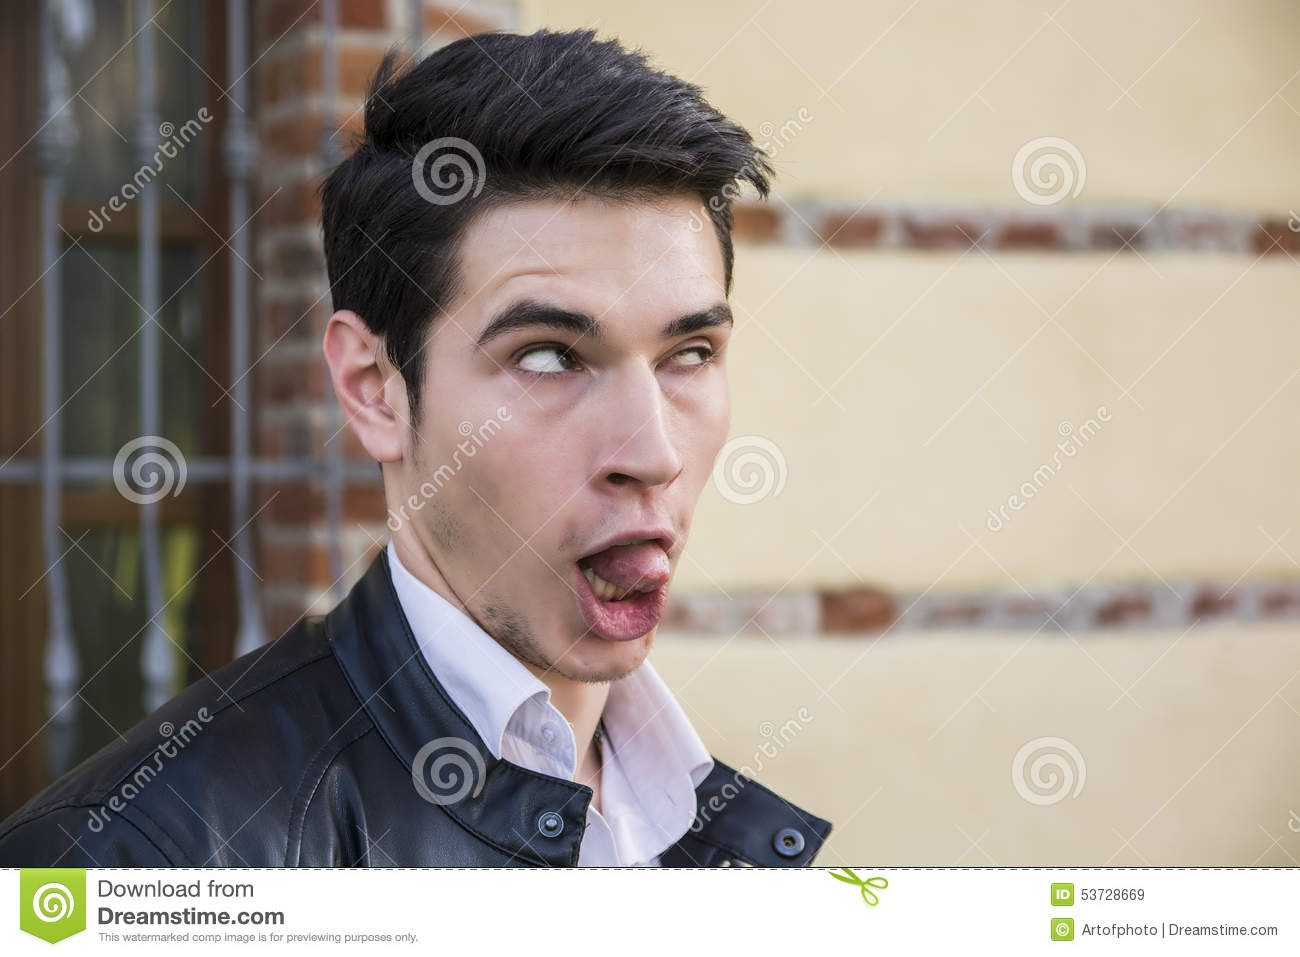 Young man outdoor doing silly face and stupid